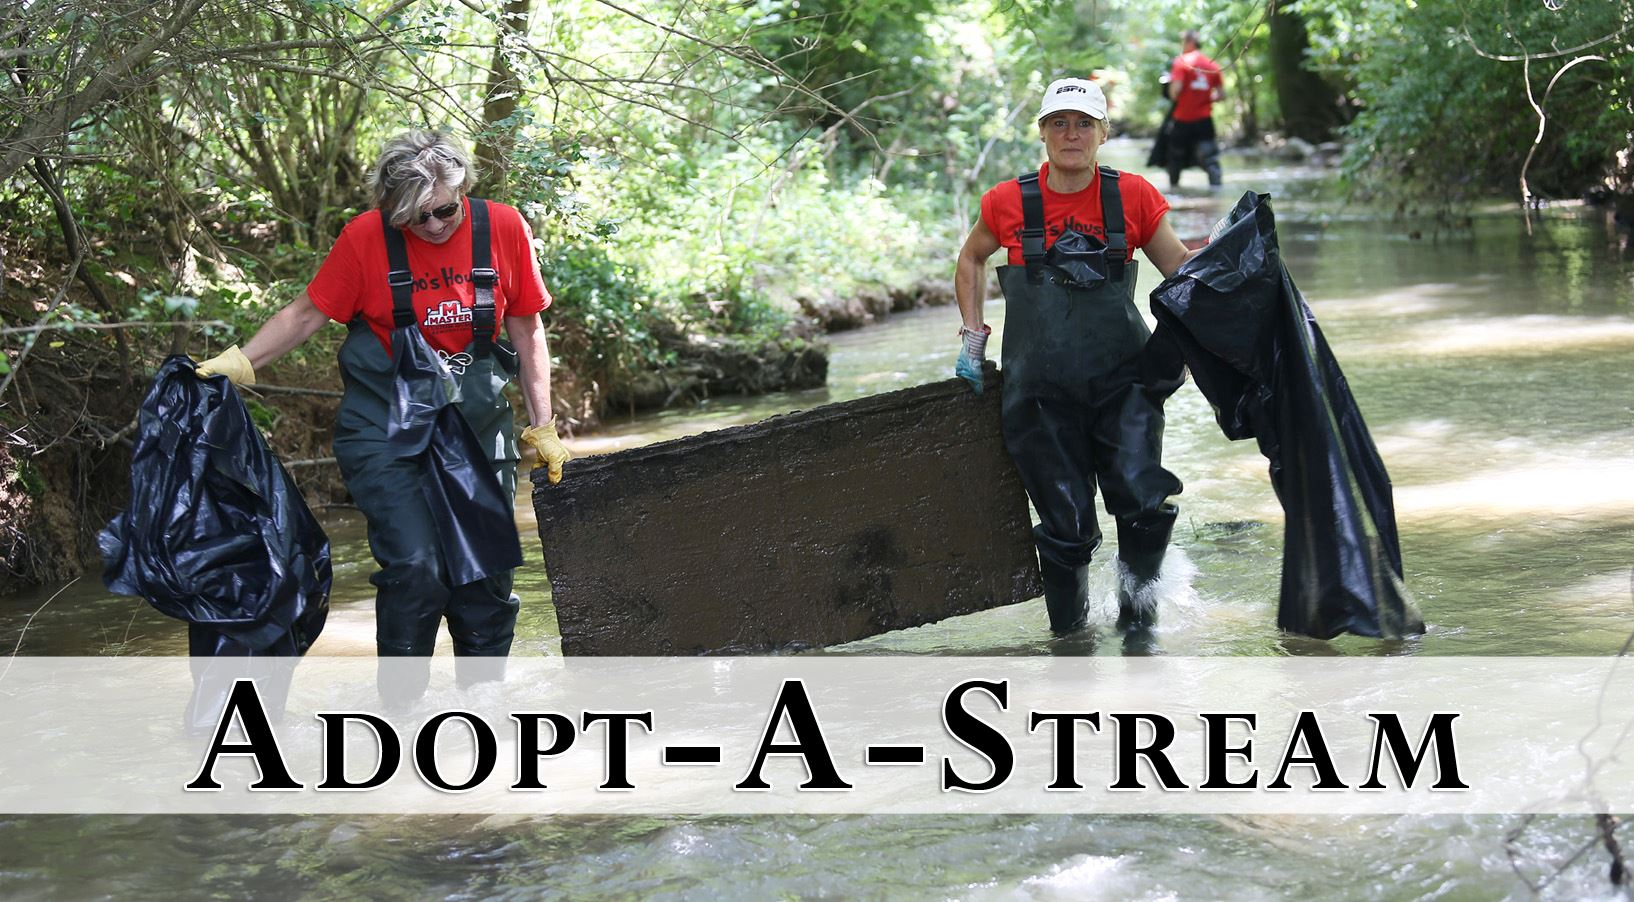 adult volunteers in a stream wearing waders and carrying a large board